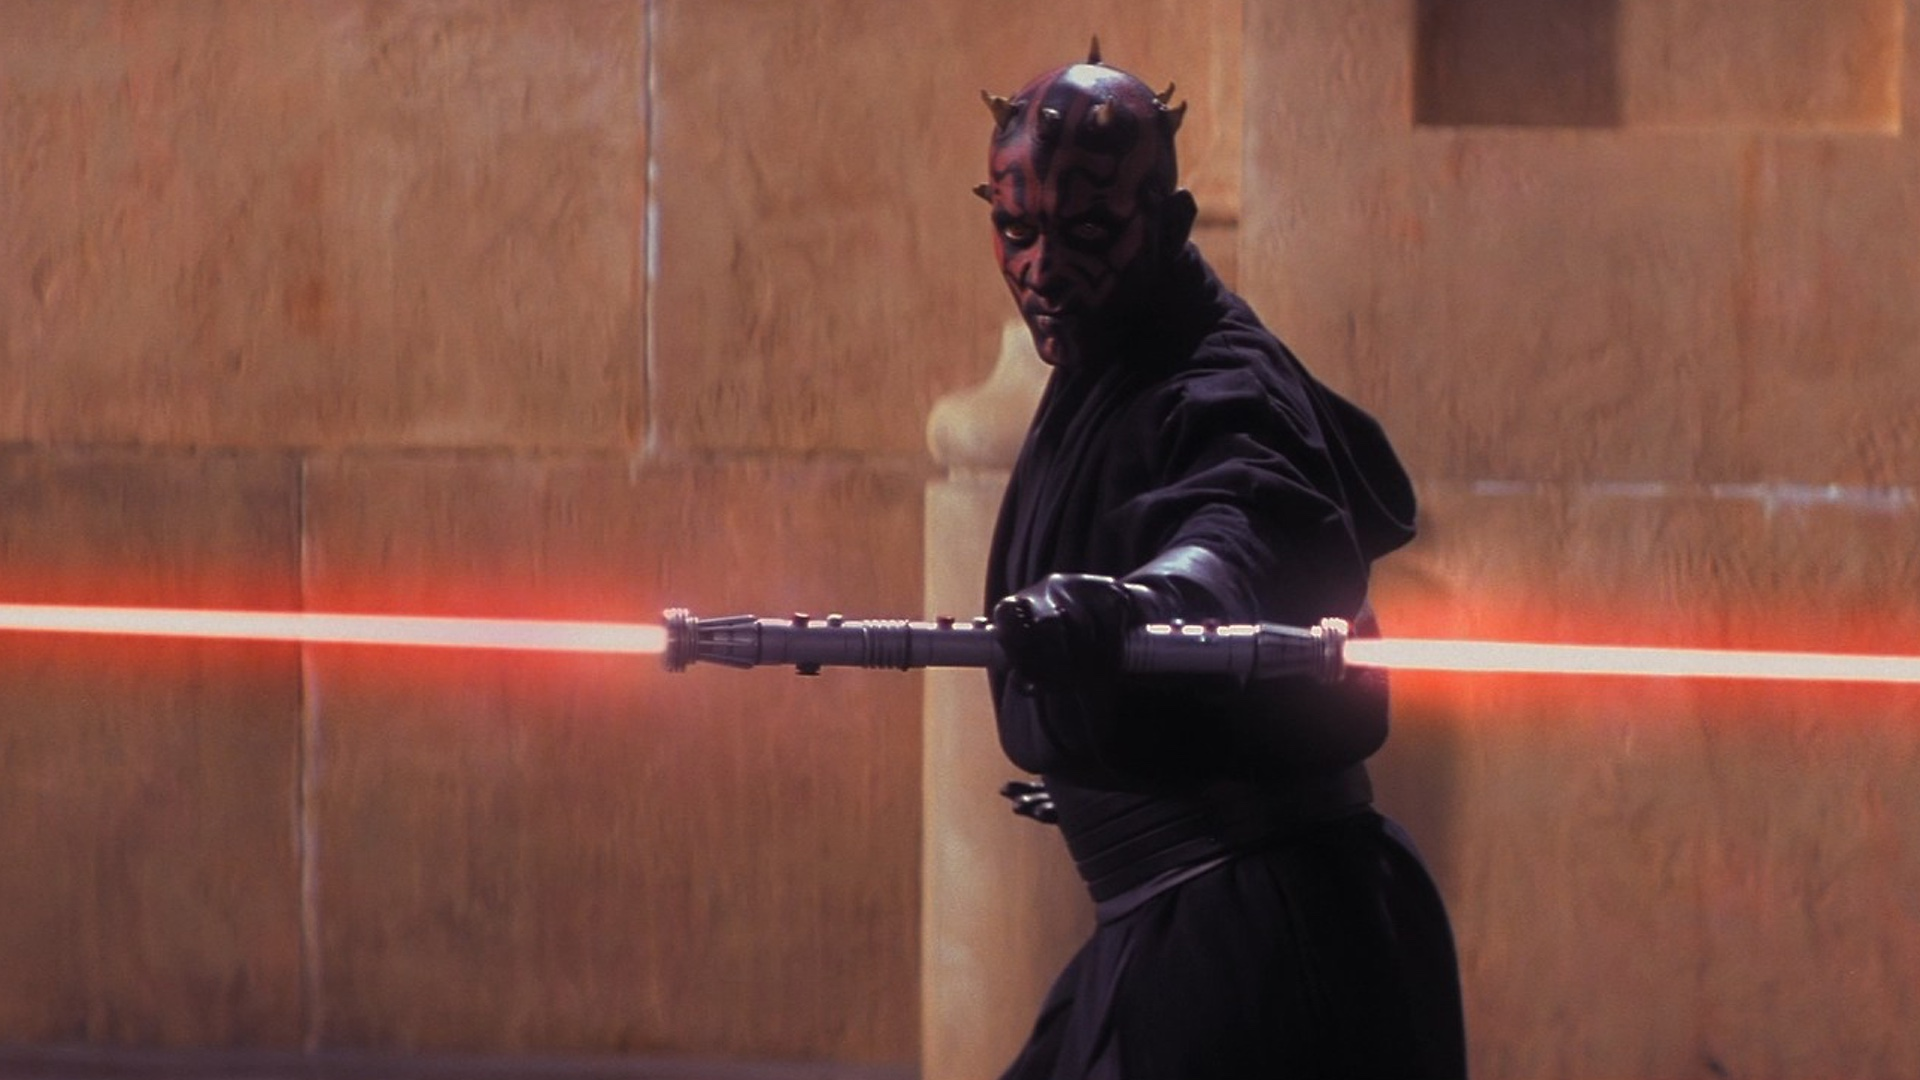 star-wars-the-phantom-menace-will-be-honored-for-its-20th-anniversary-at-star-wars-celebration-social.jpg